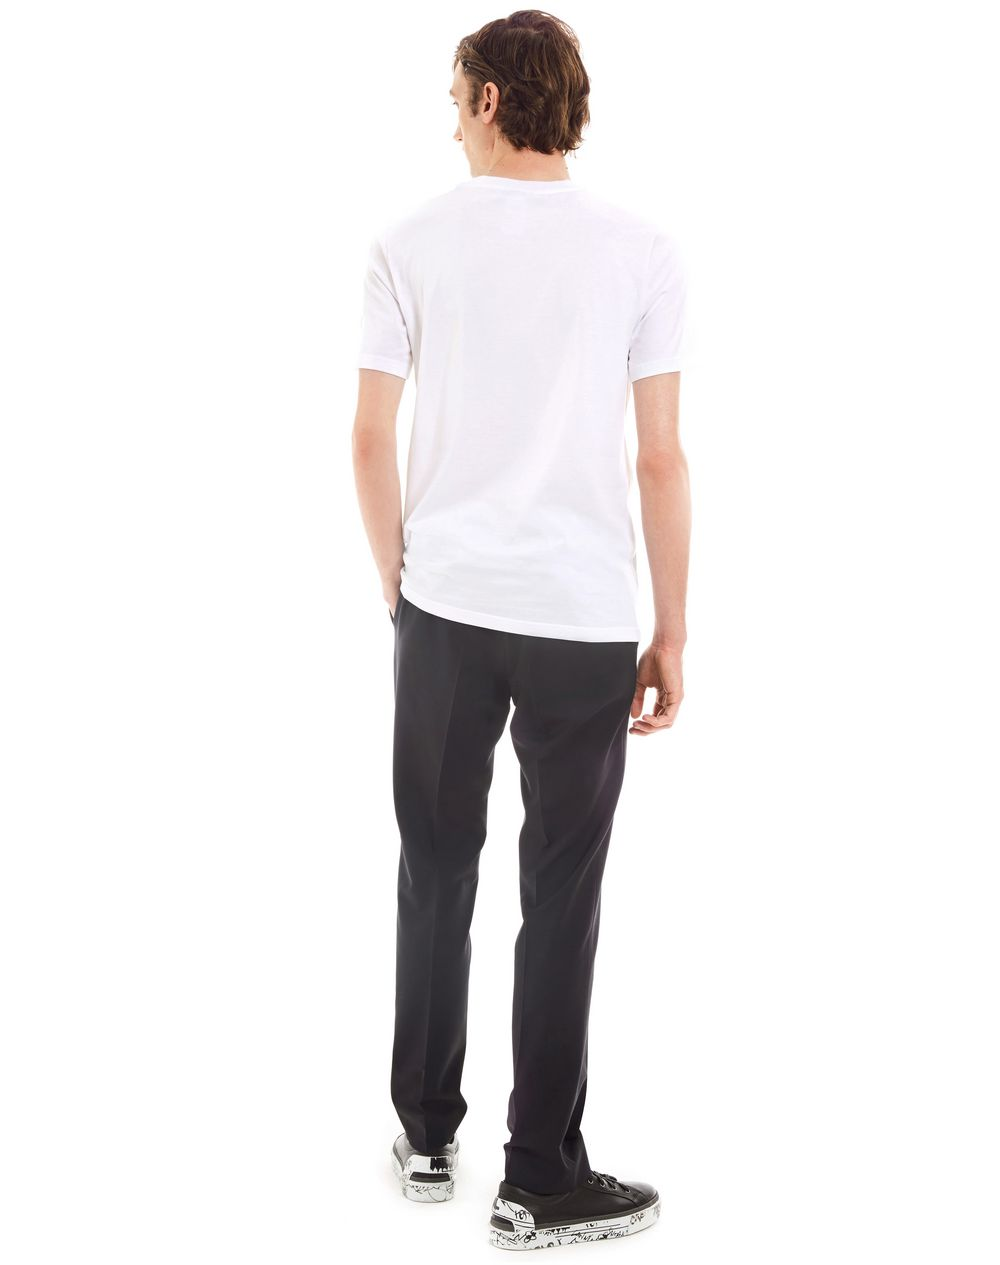 """GAZE"" WHITE SLIM-FIT T-SHIRT BY CÉDRIC RIVRAIN - Lanvin"